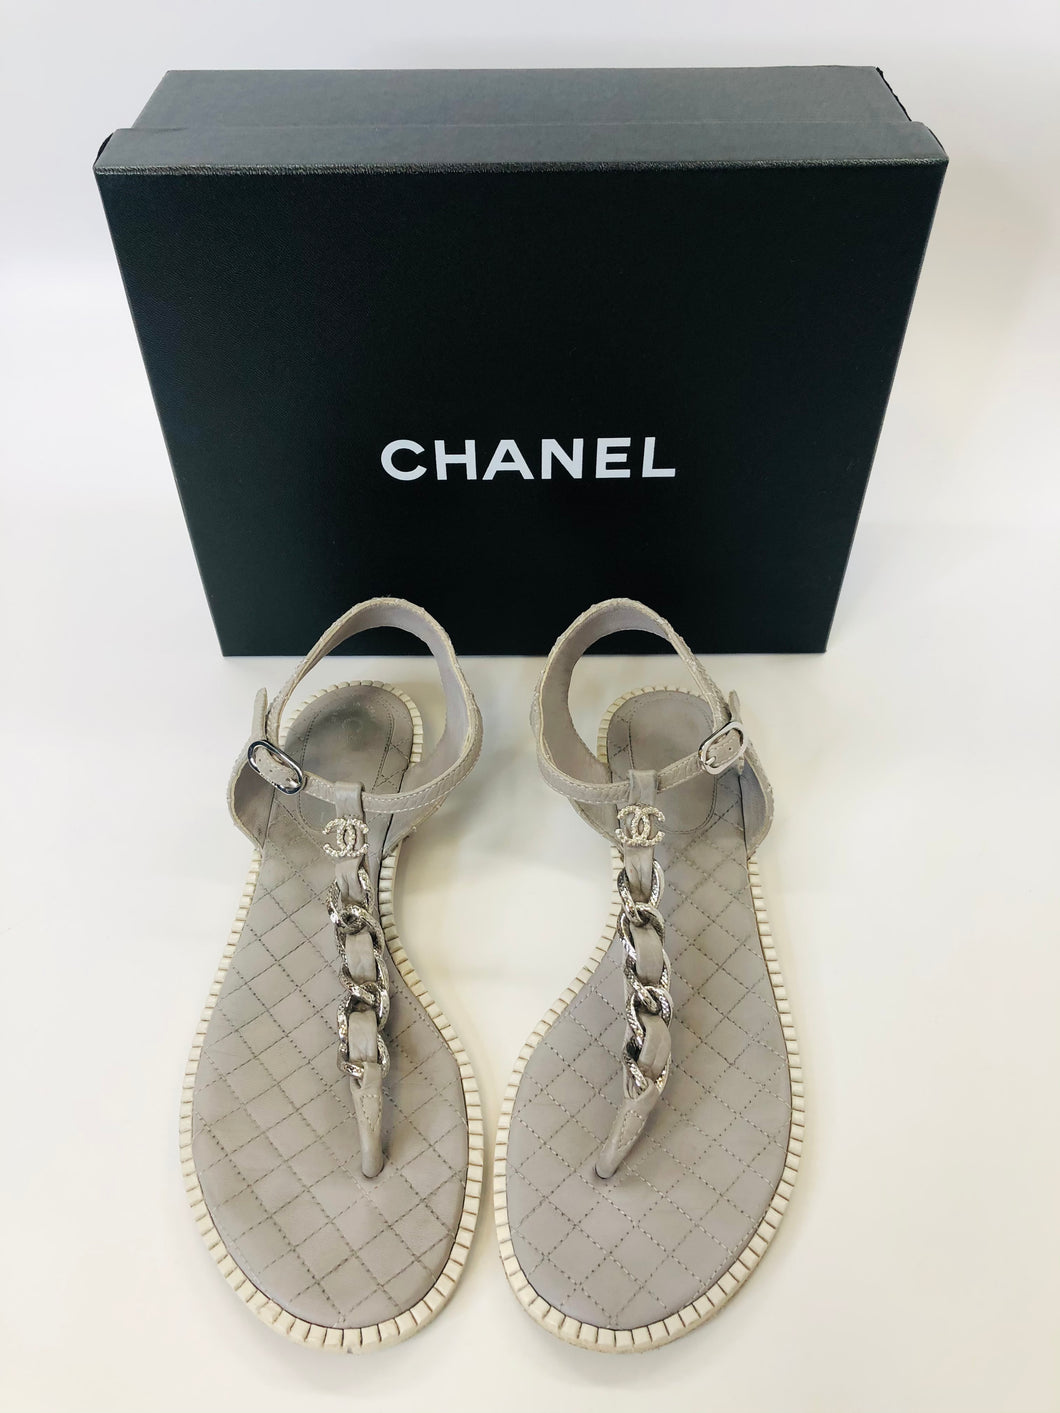 CHANEL Grey and Ivory Chain Thong Sandals Size 40 1/2